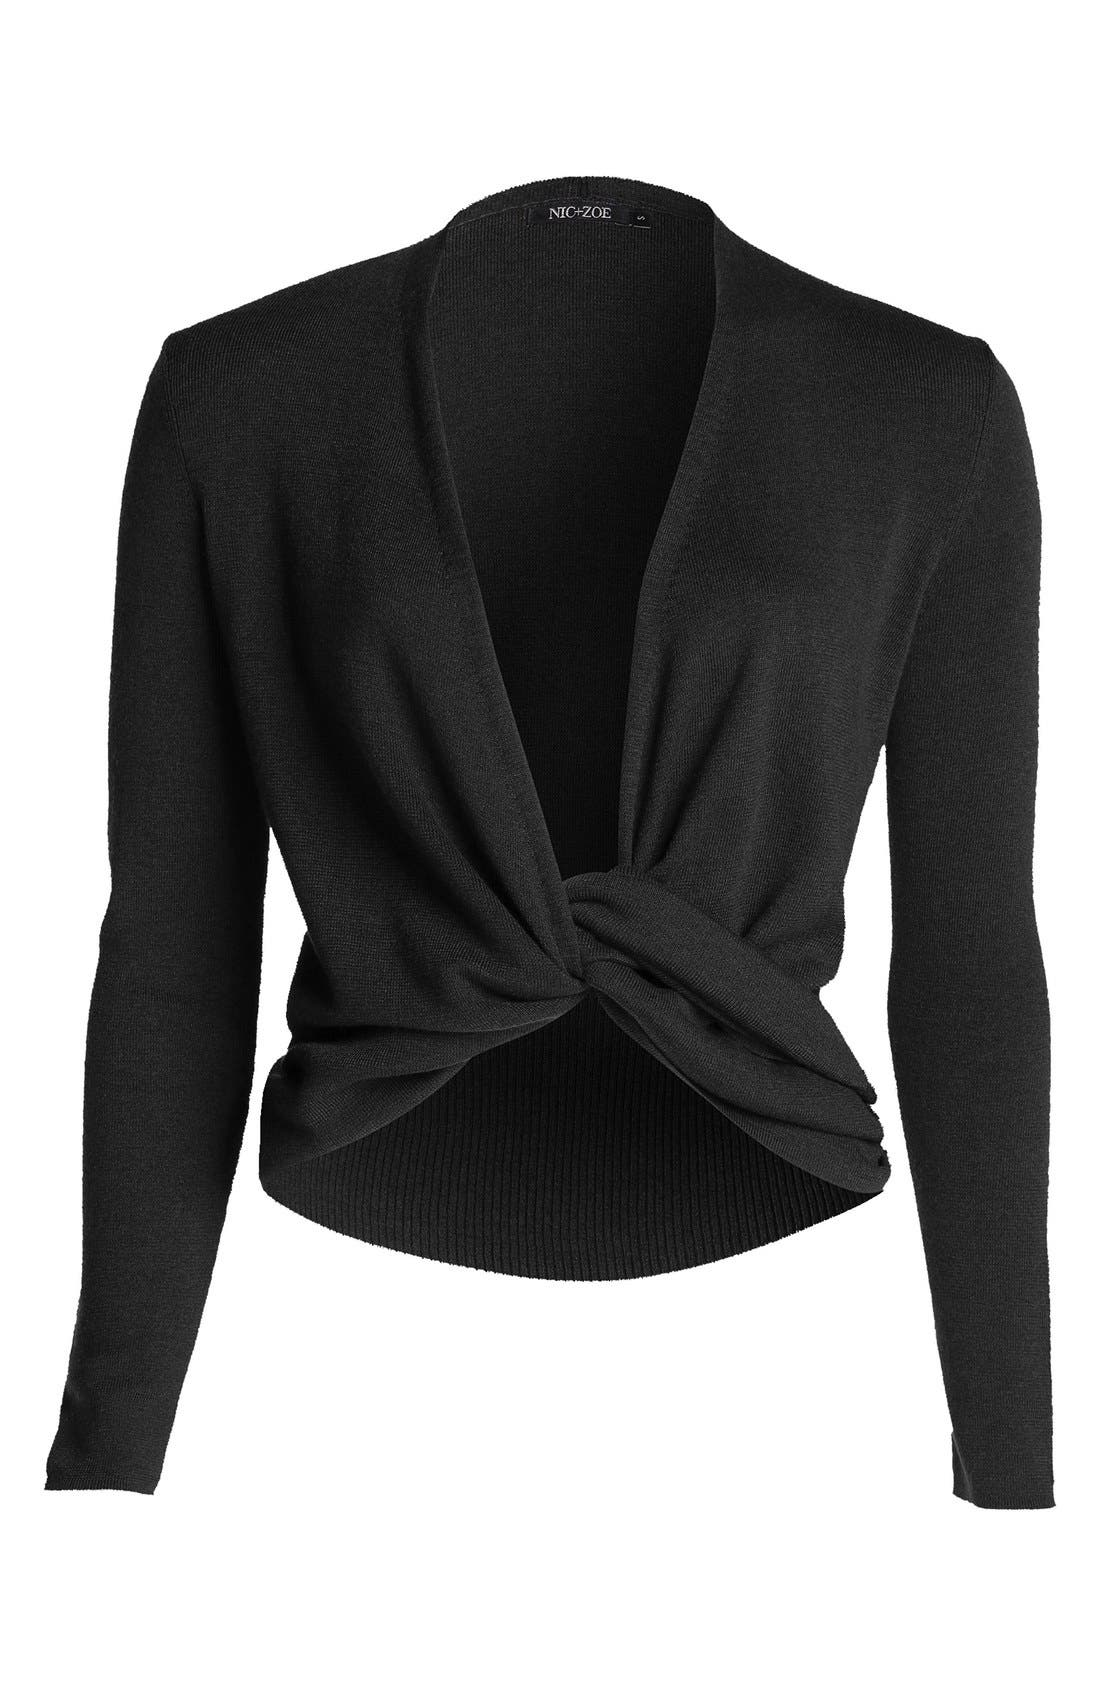 Four-Way Convertible Cardigan,                             Alternate thumbnail 6, color,                             Black Onyx